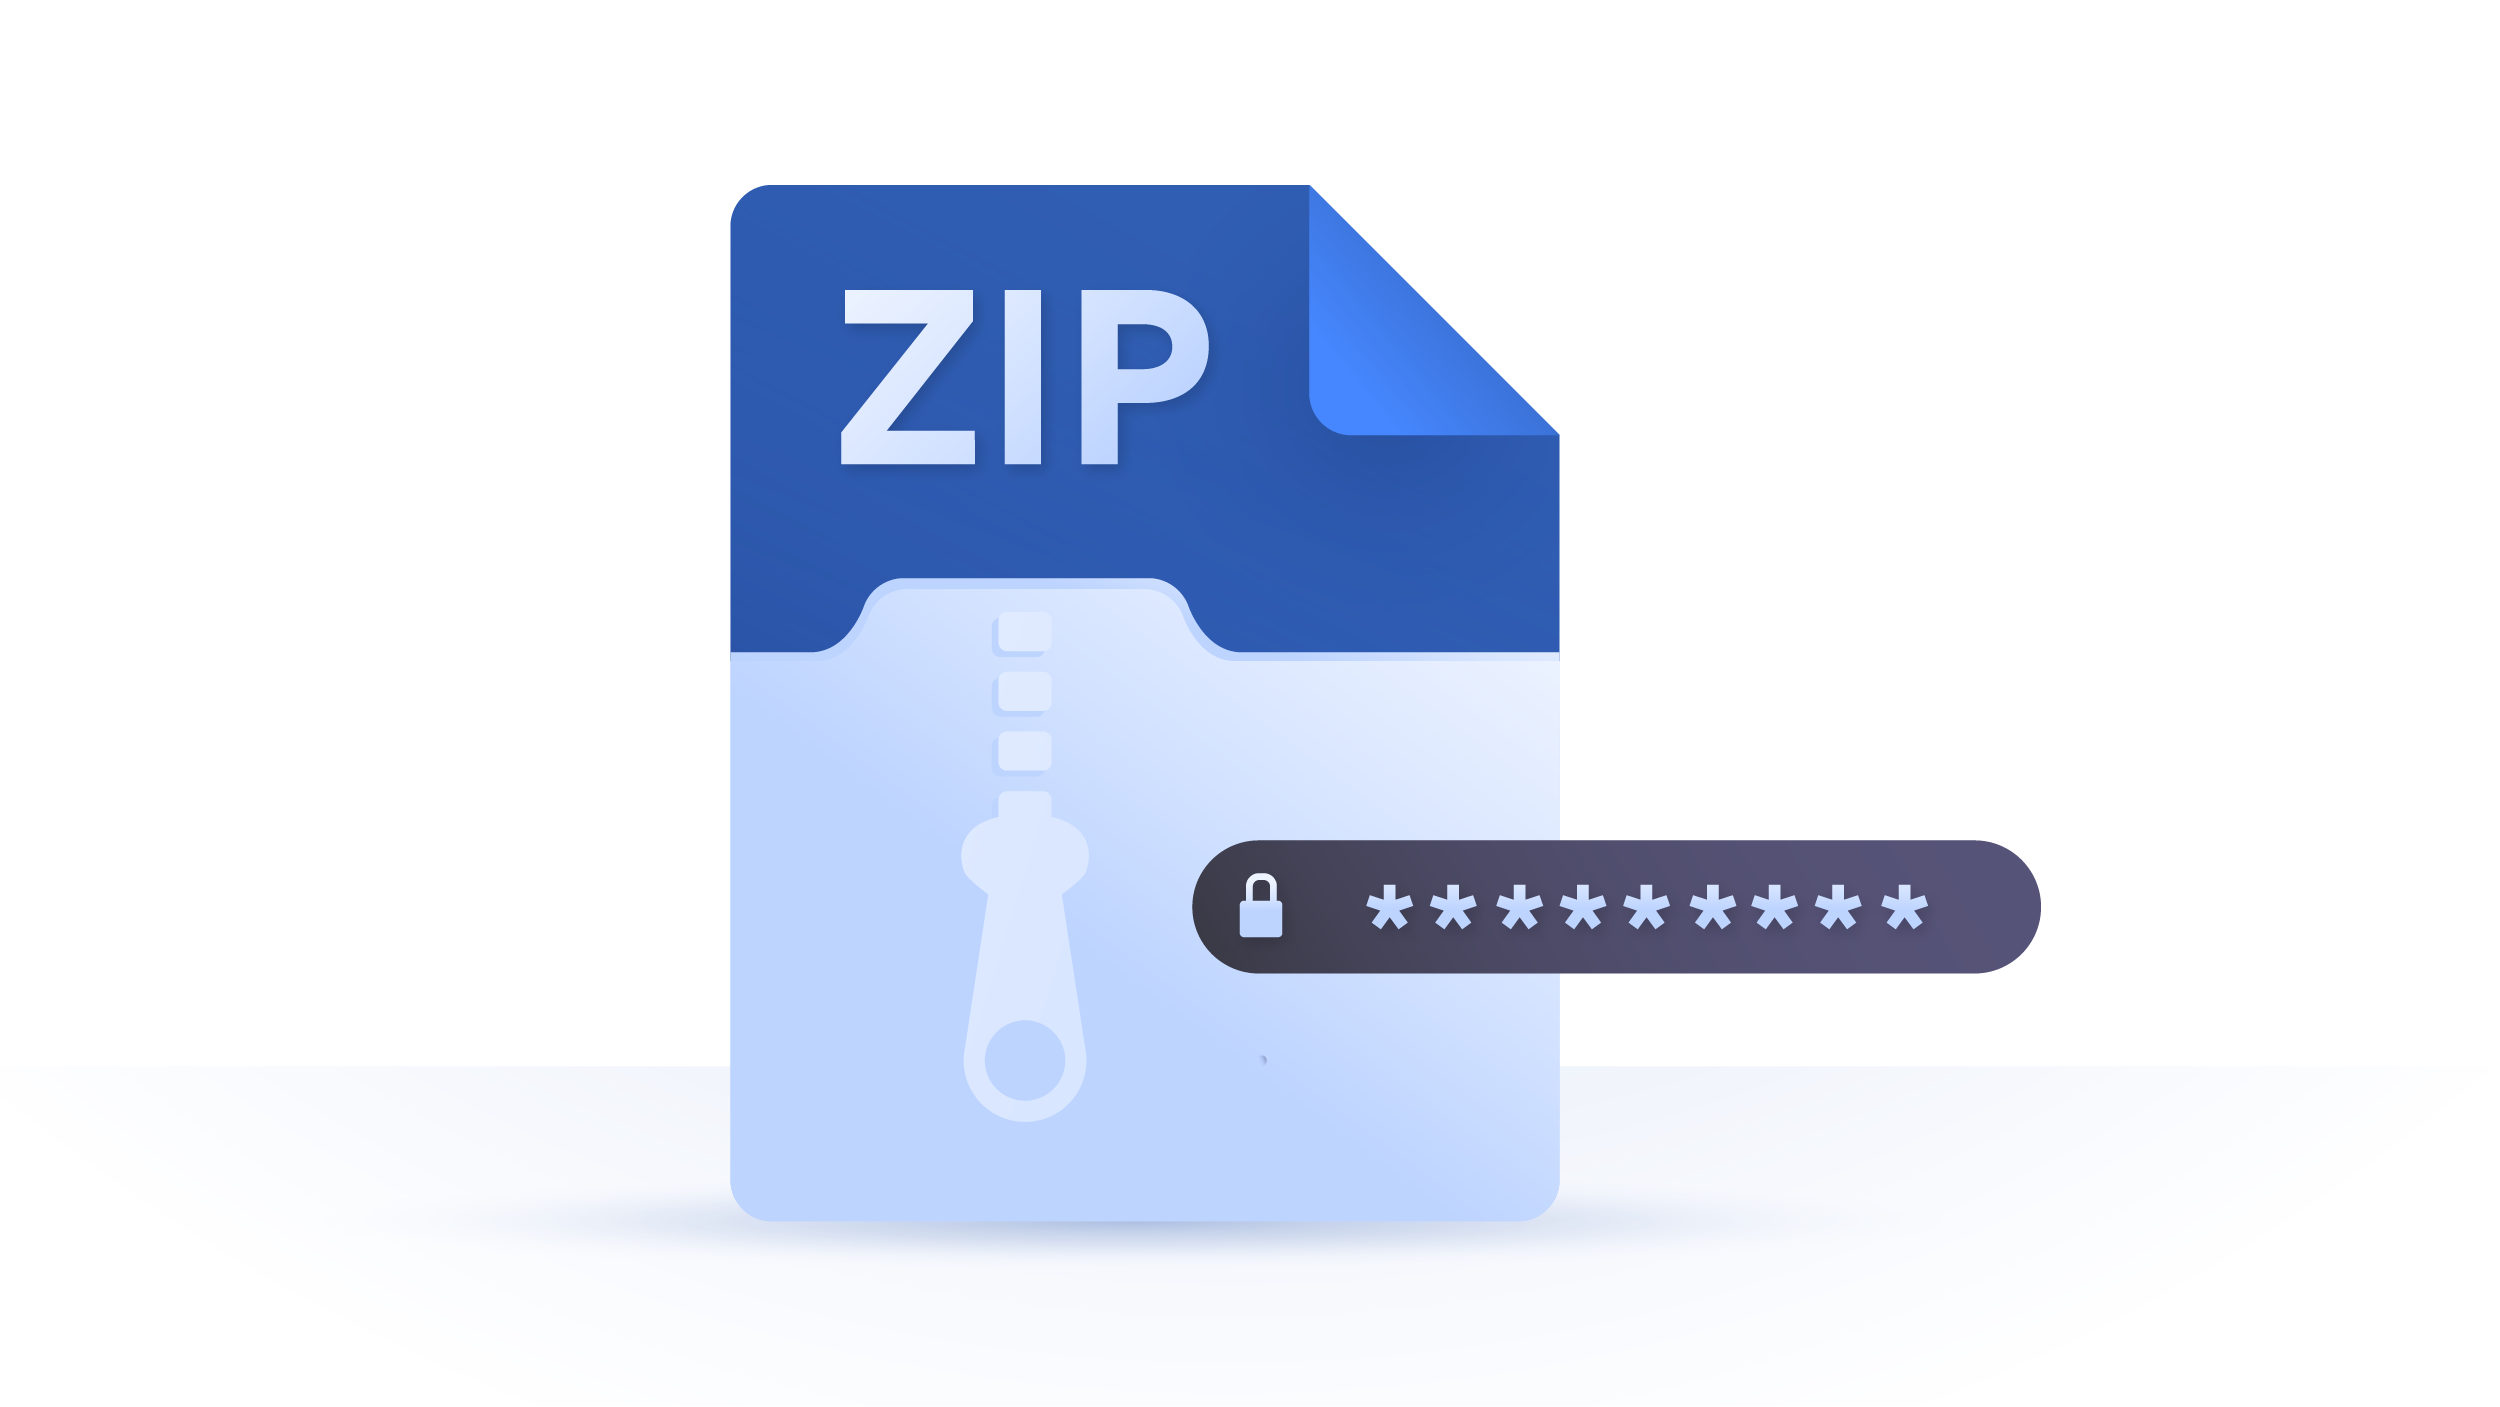 How to password protect a ZIP file on Windows 10